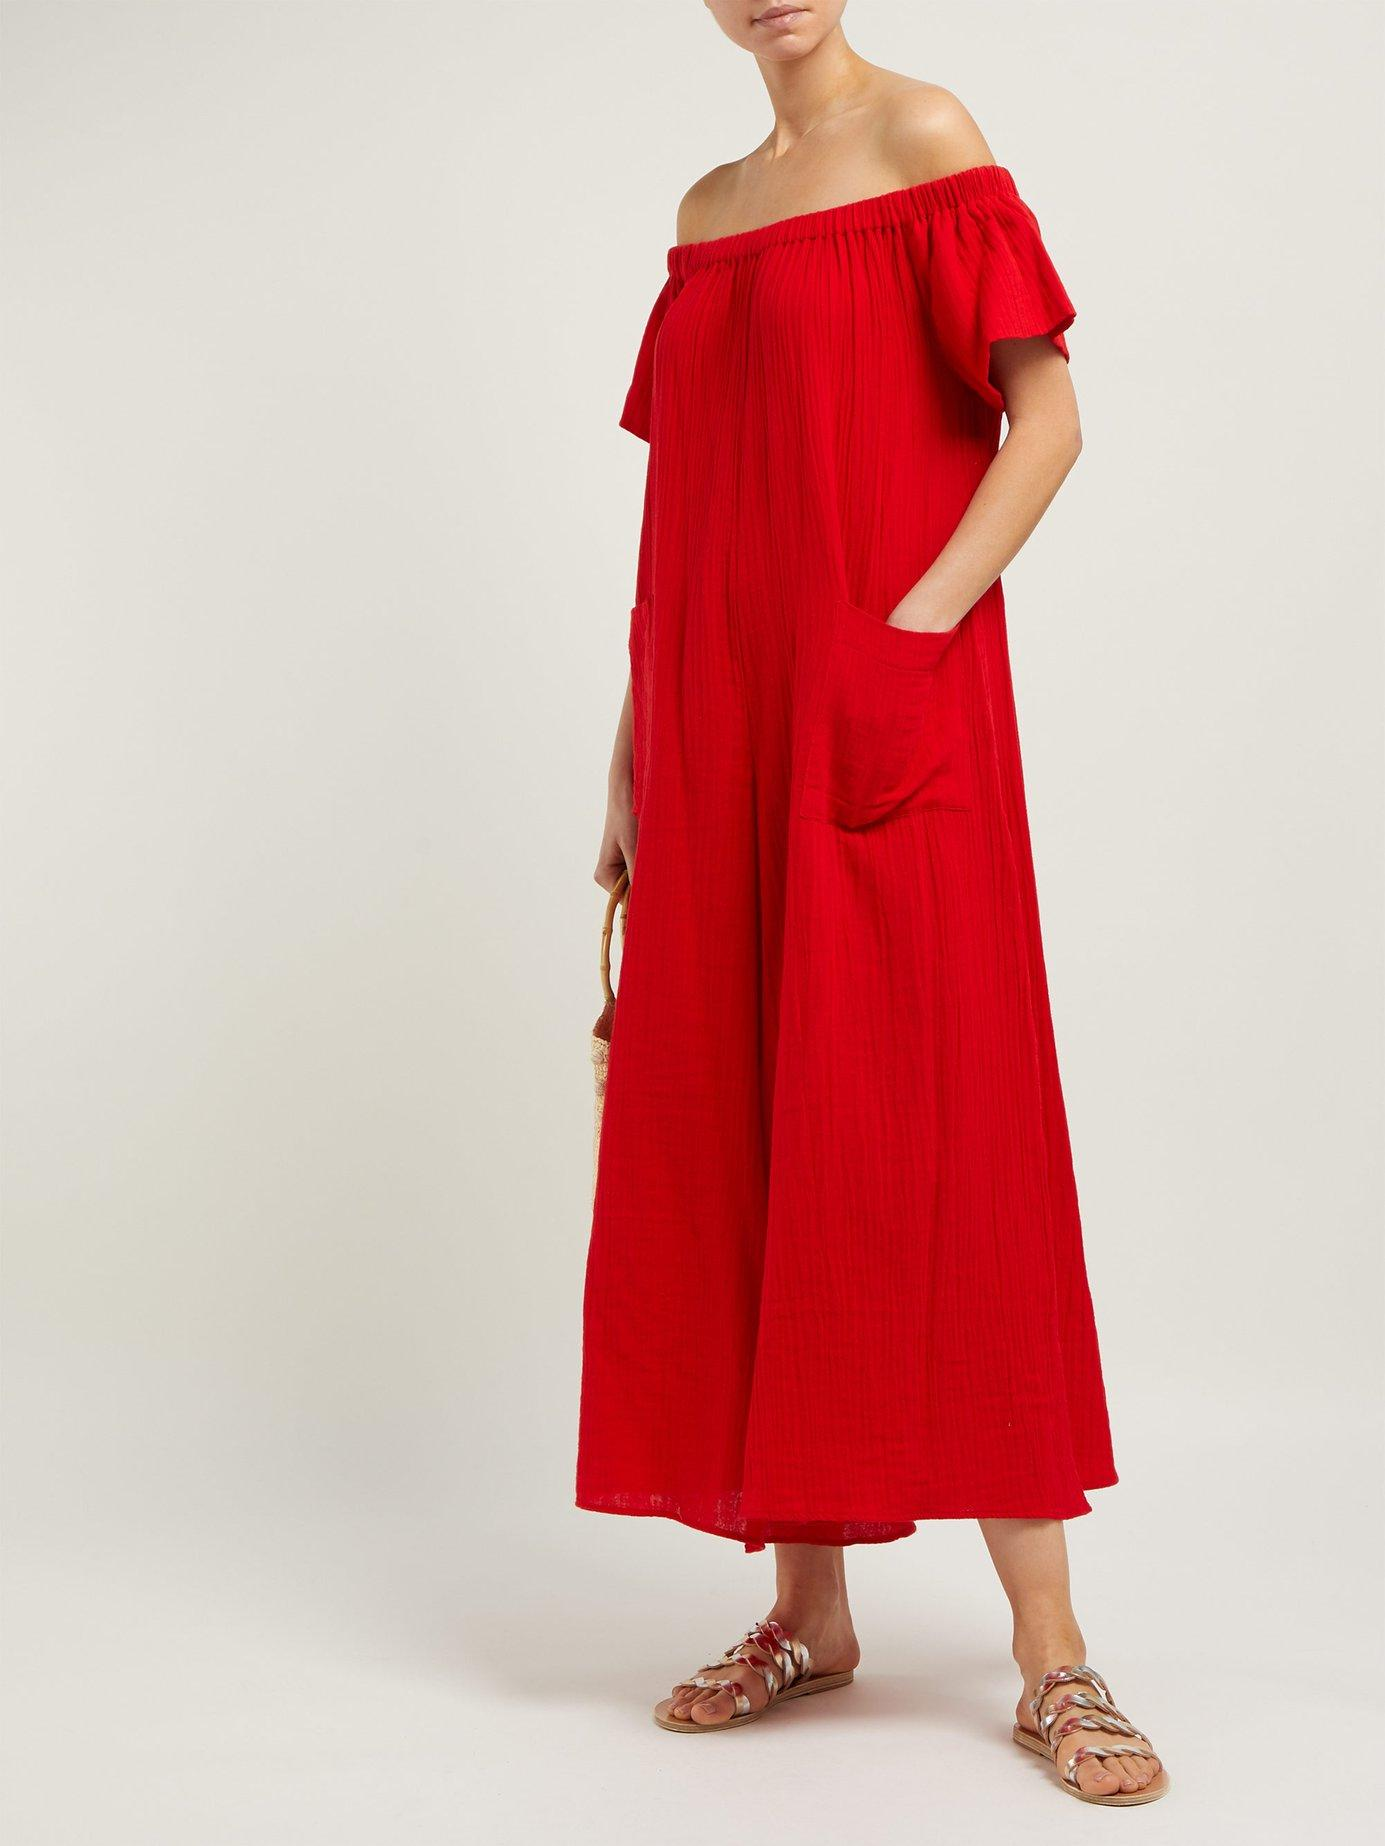 2d5c1e6439e Lyst - Mara Hoffman Blanche Off-the-shoulder Jumpsuit in Red - Save 34%